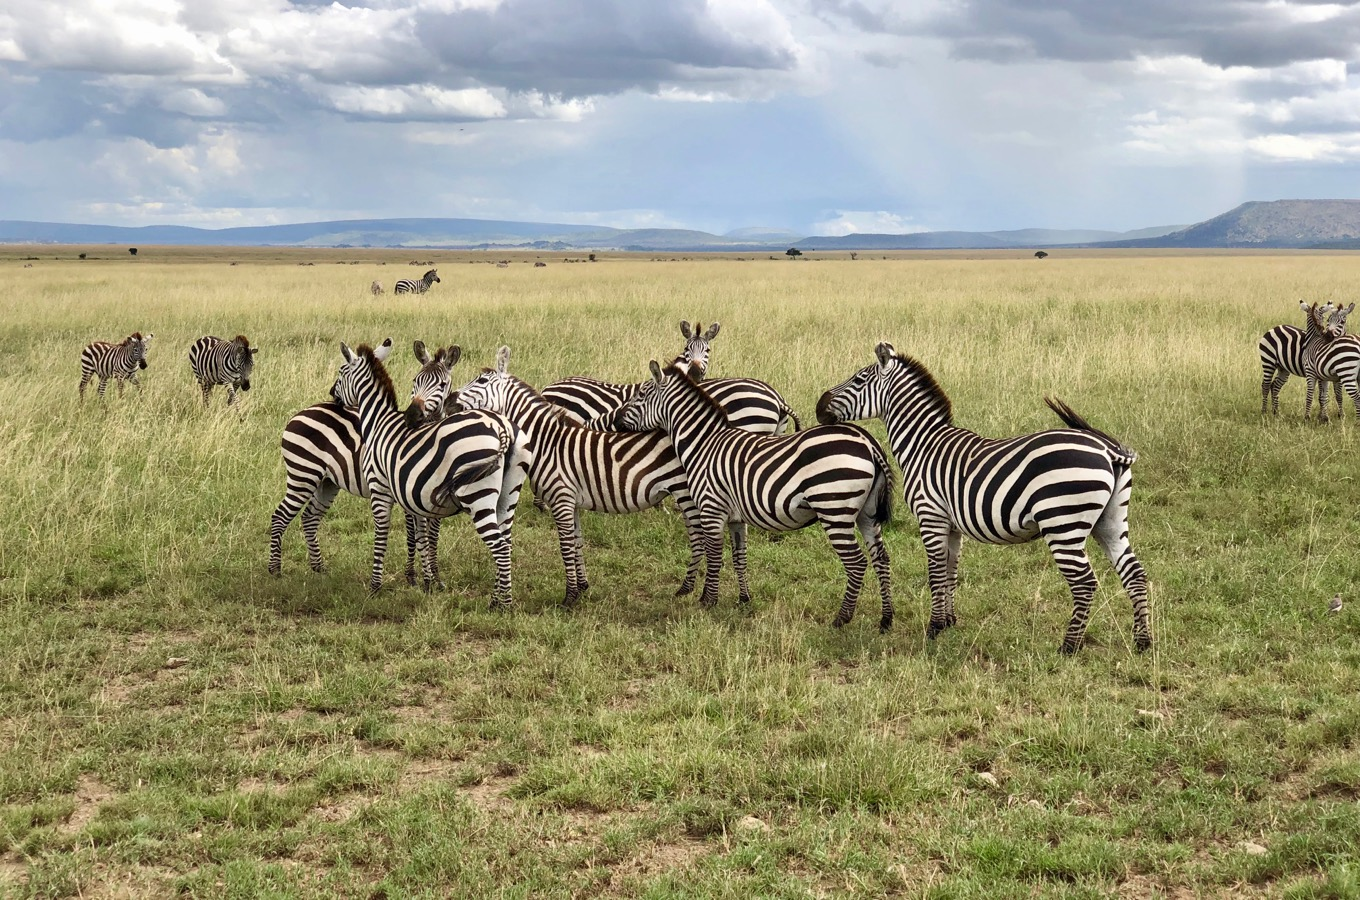 Zebras during the Big Migration in the Serengeti